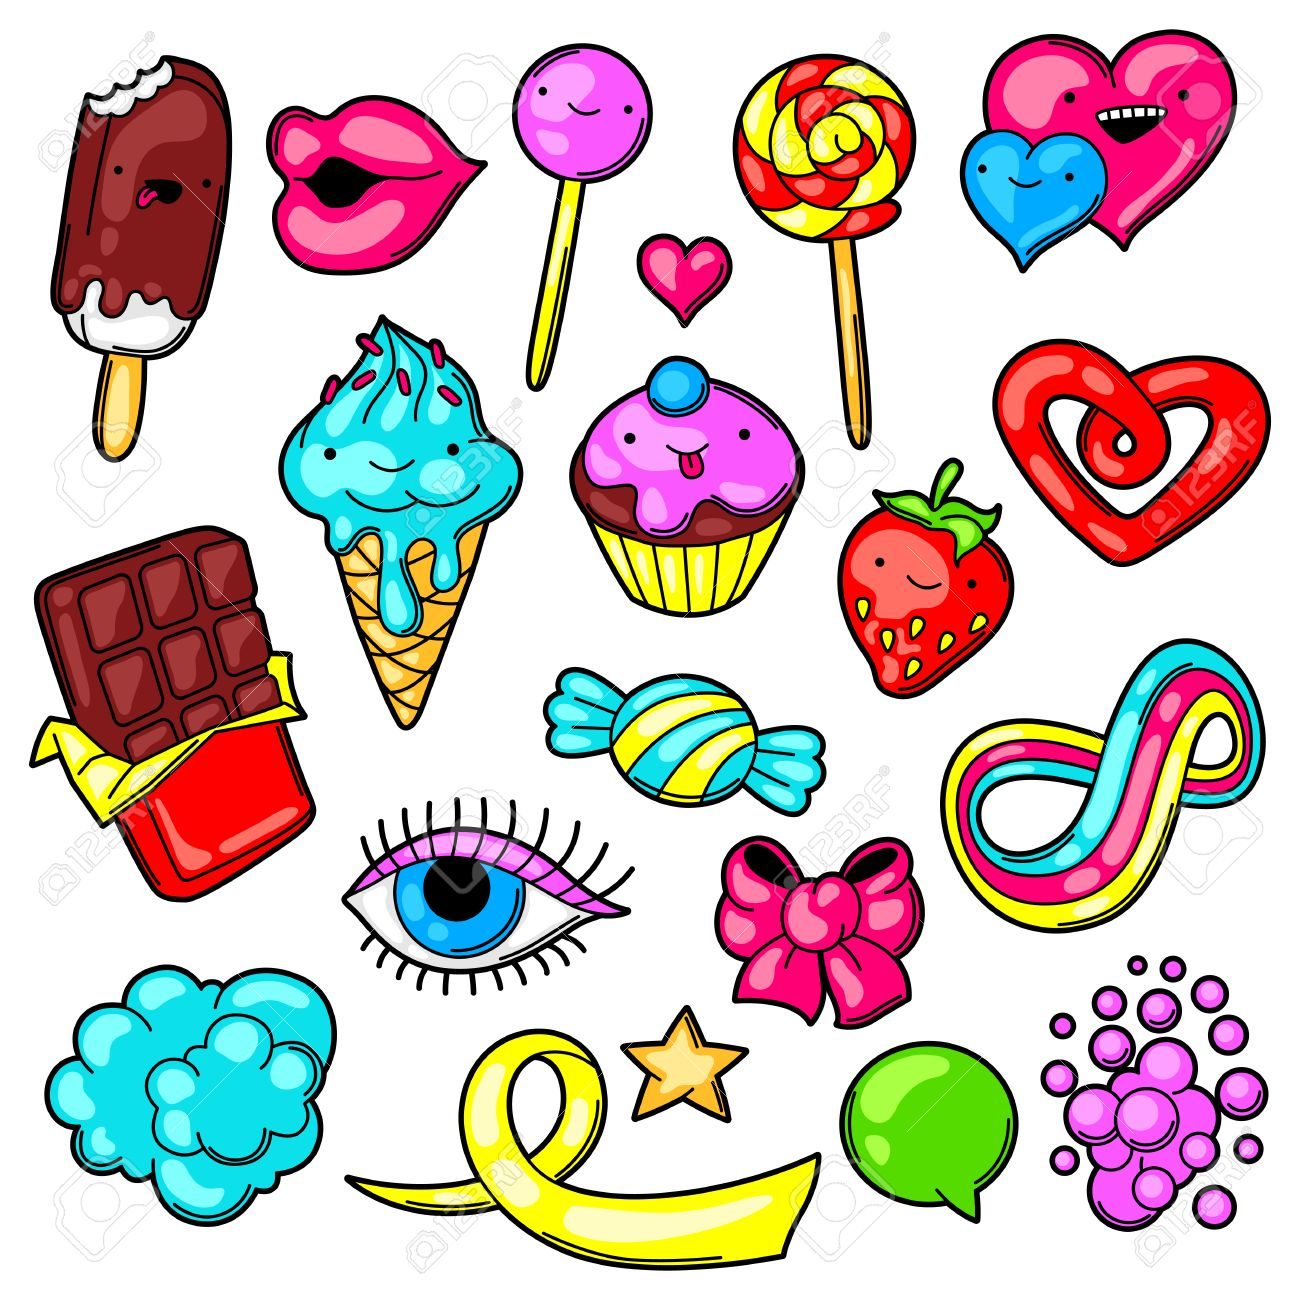 Ensemble De Bonbons Et Bonbons Kawaii Crazy Sweet Stuff En Style Dessin Anime Clip Art Libres De Droits Vecteurs Et Illustration Image 66153546